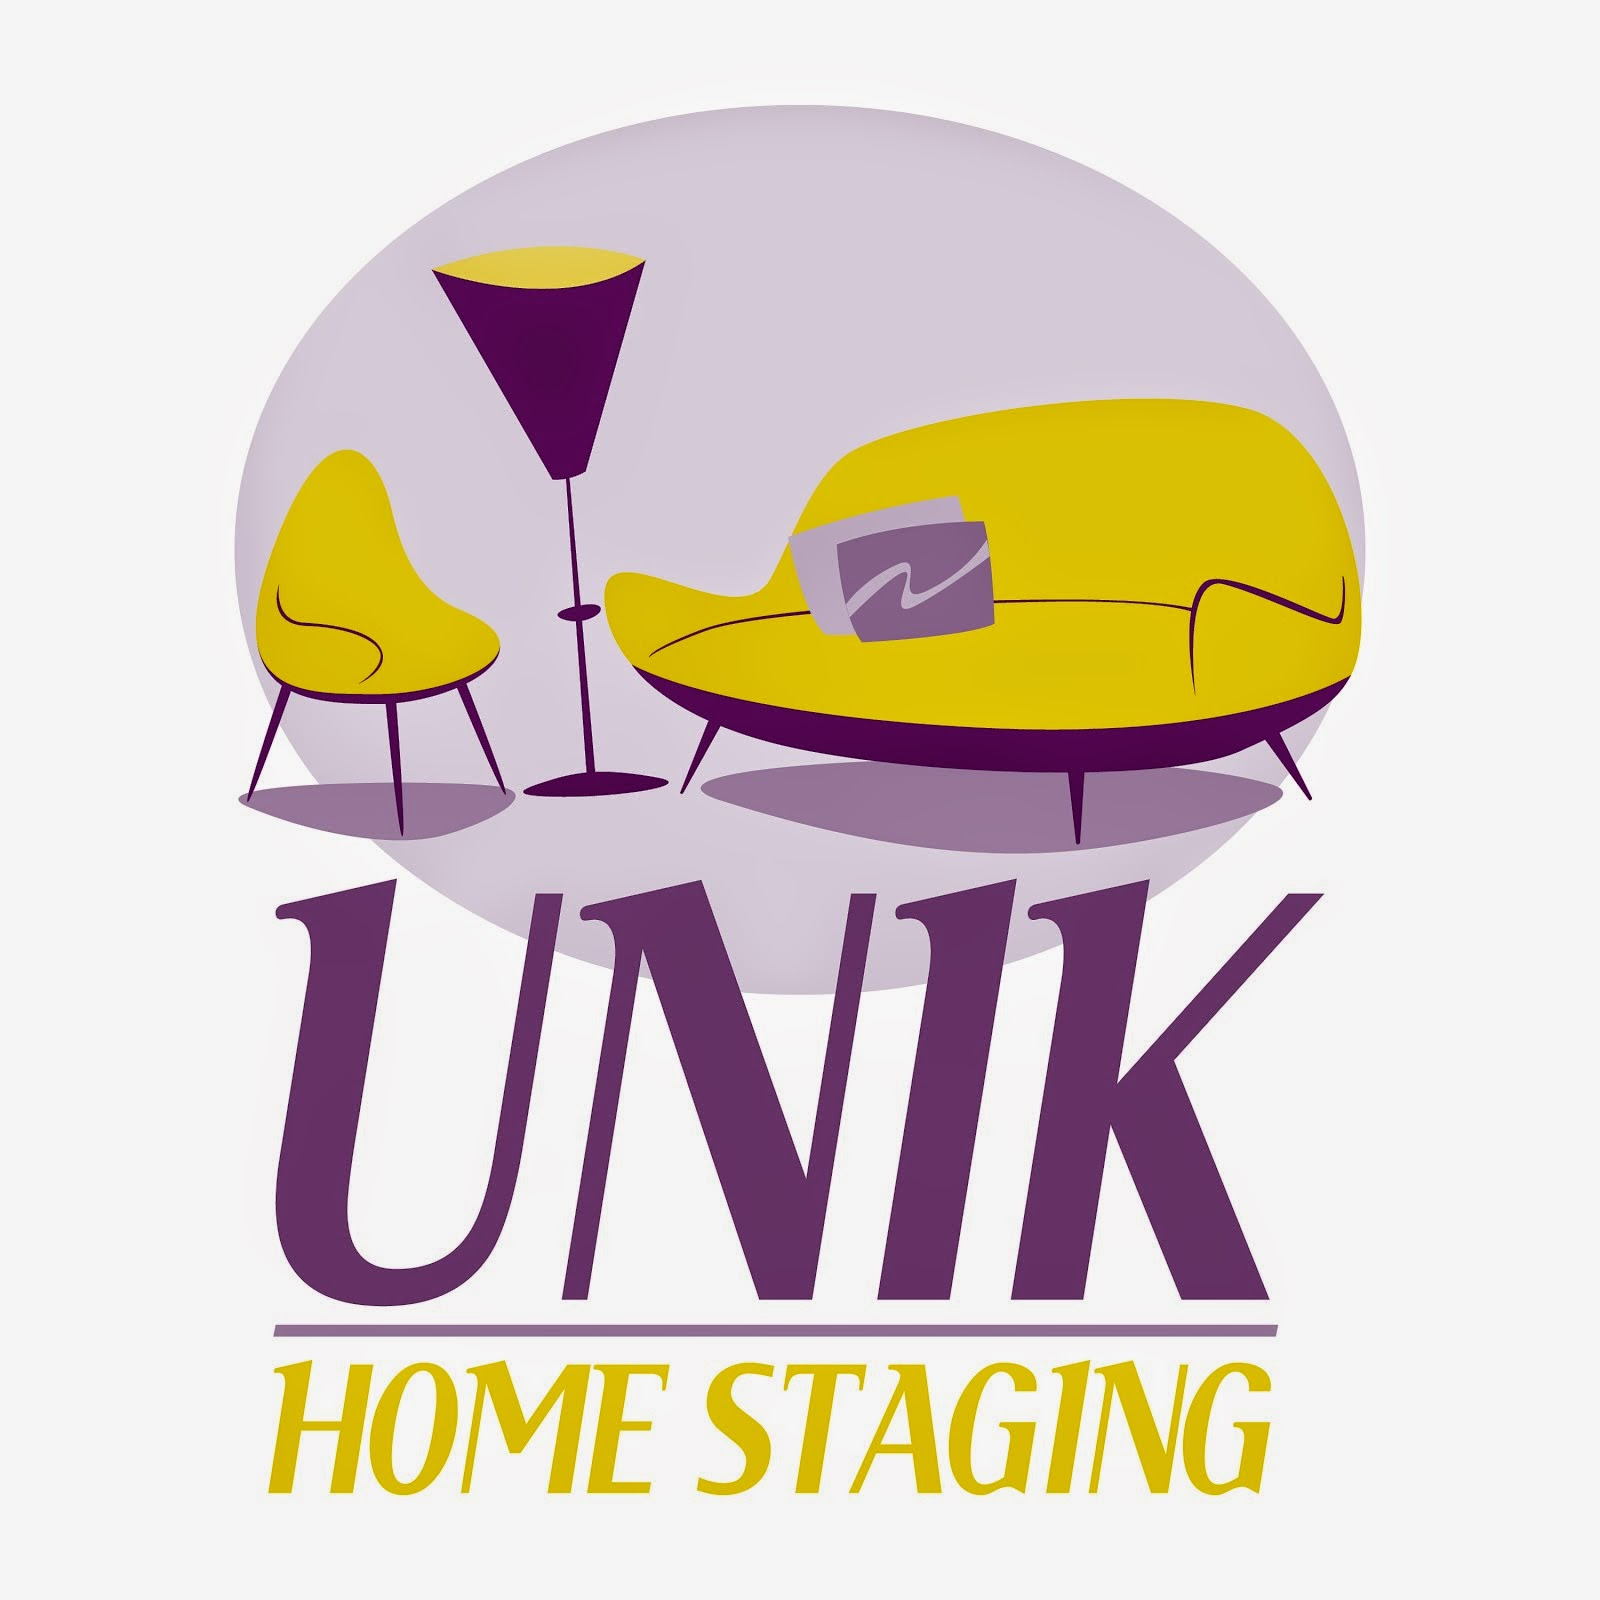 Unik Home Staging